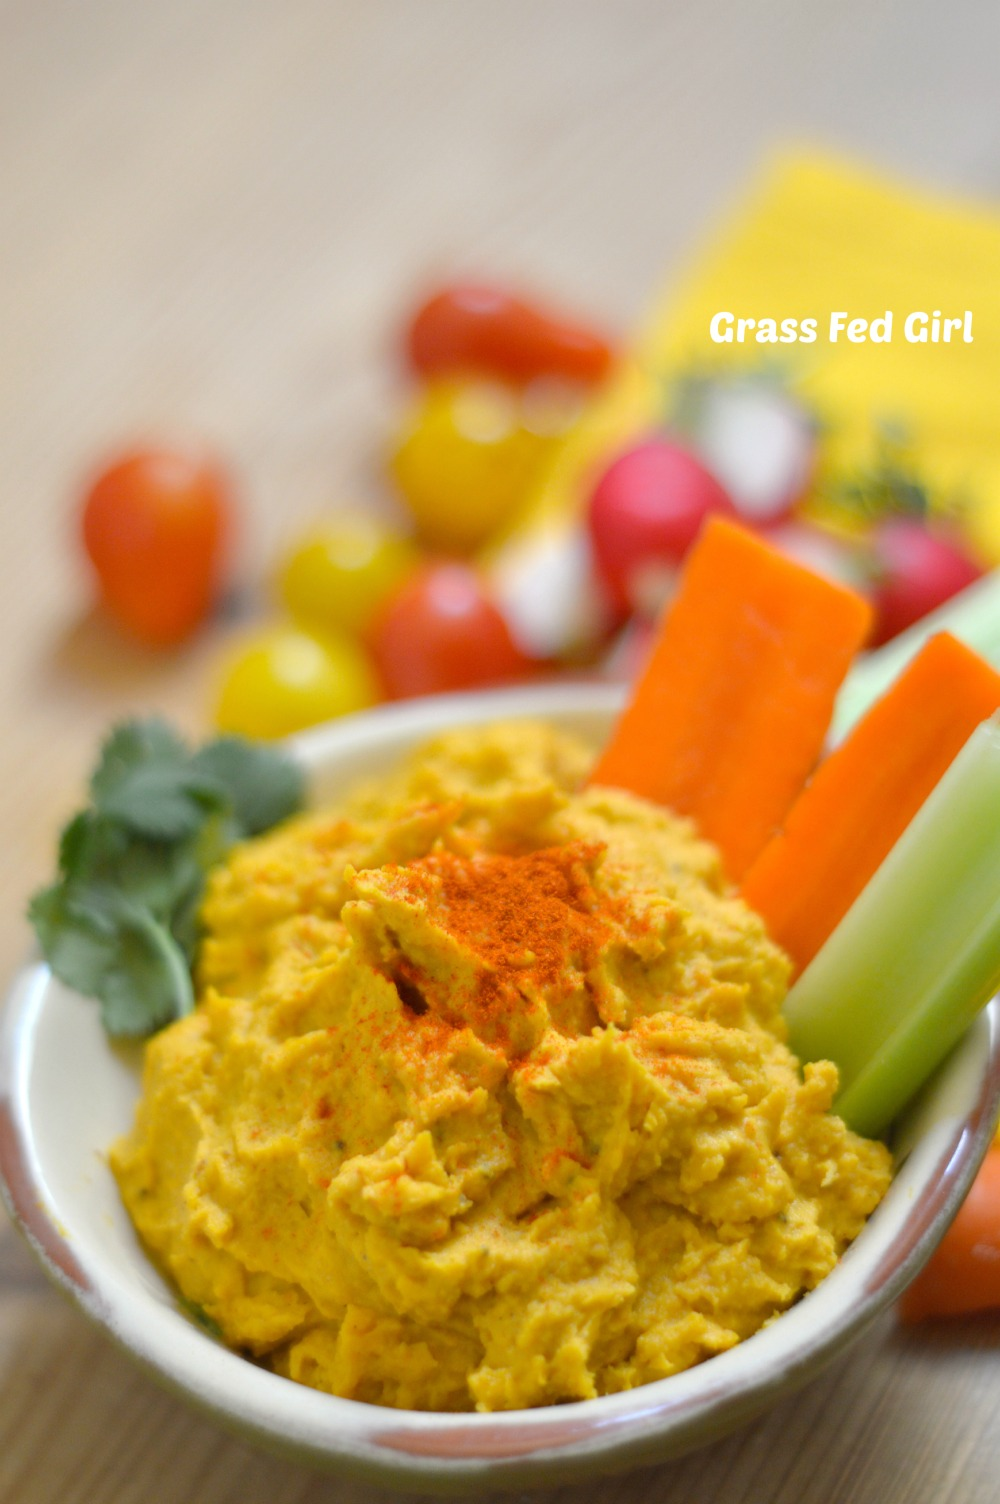 Paleo and Low Carb Pumpkin Hummus Recipe | Grass Fed Girl